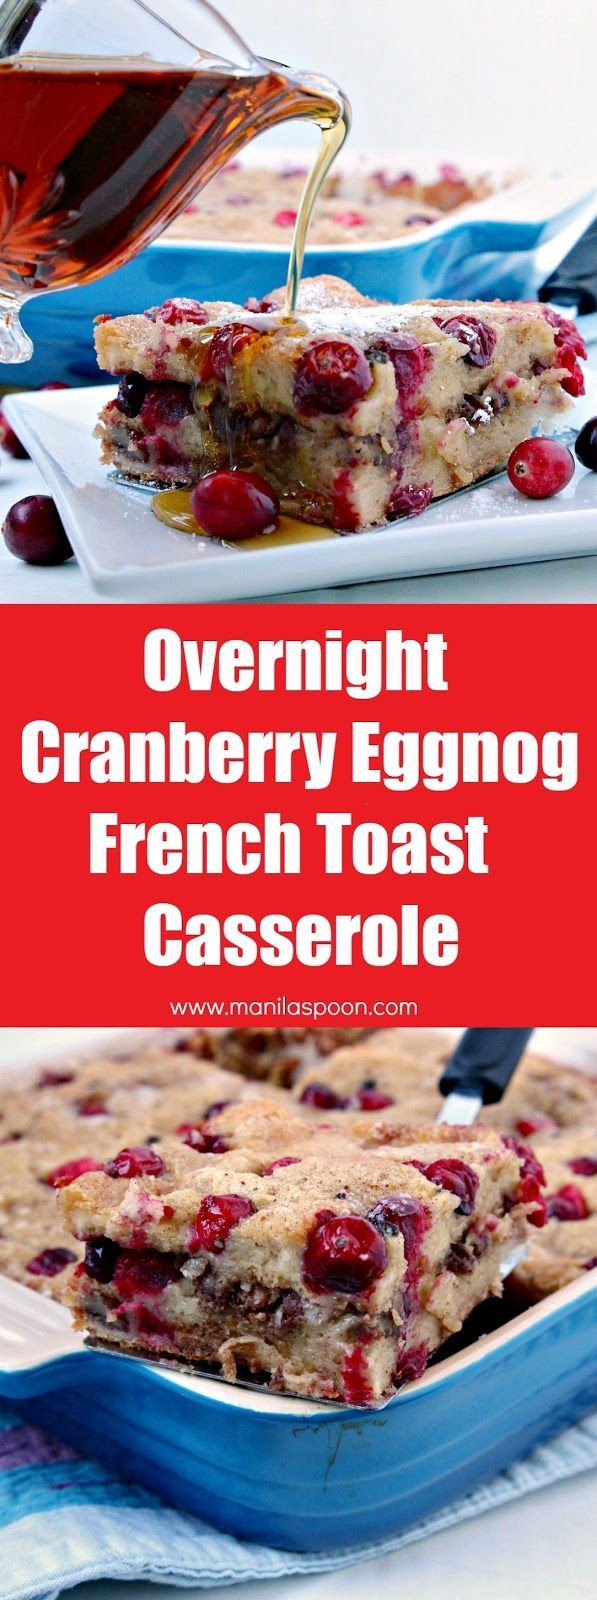 With sweet and creamy eggnog, tangy cranberries and crunchy pecans - this MAKE AHEAD Cranberry Eggnog French Toast Casserole is the perfect breakfast or brunch dish for Christmas, New Year and beyond!   manilaspoon.com